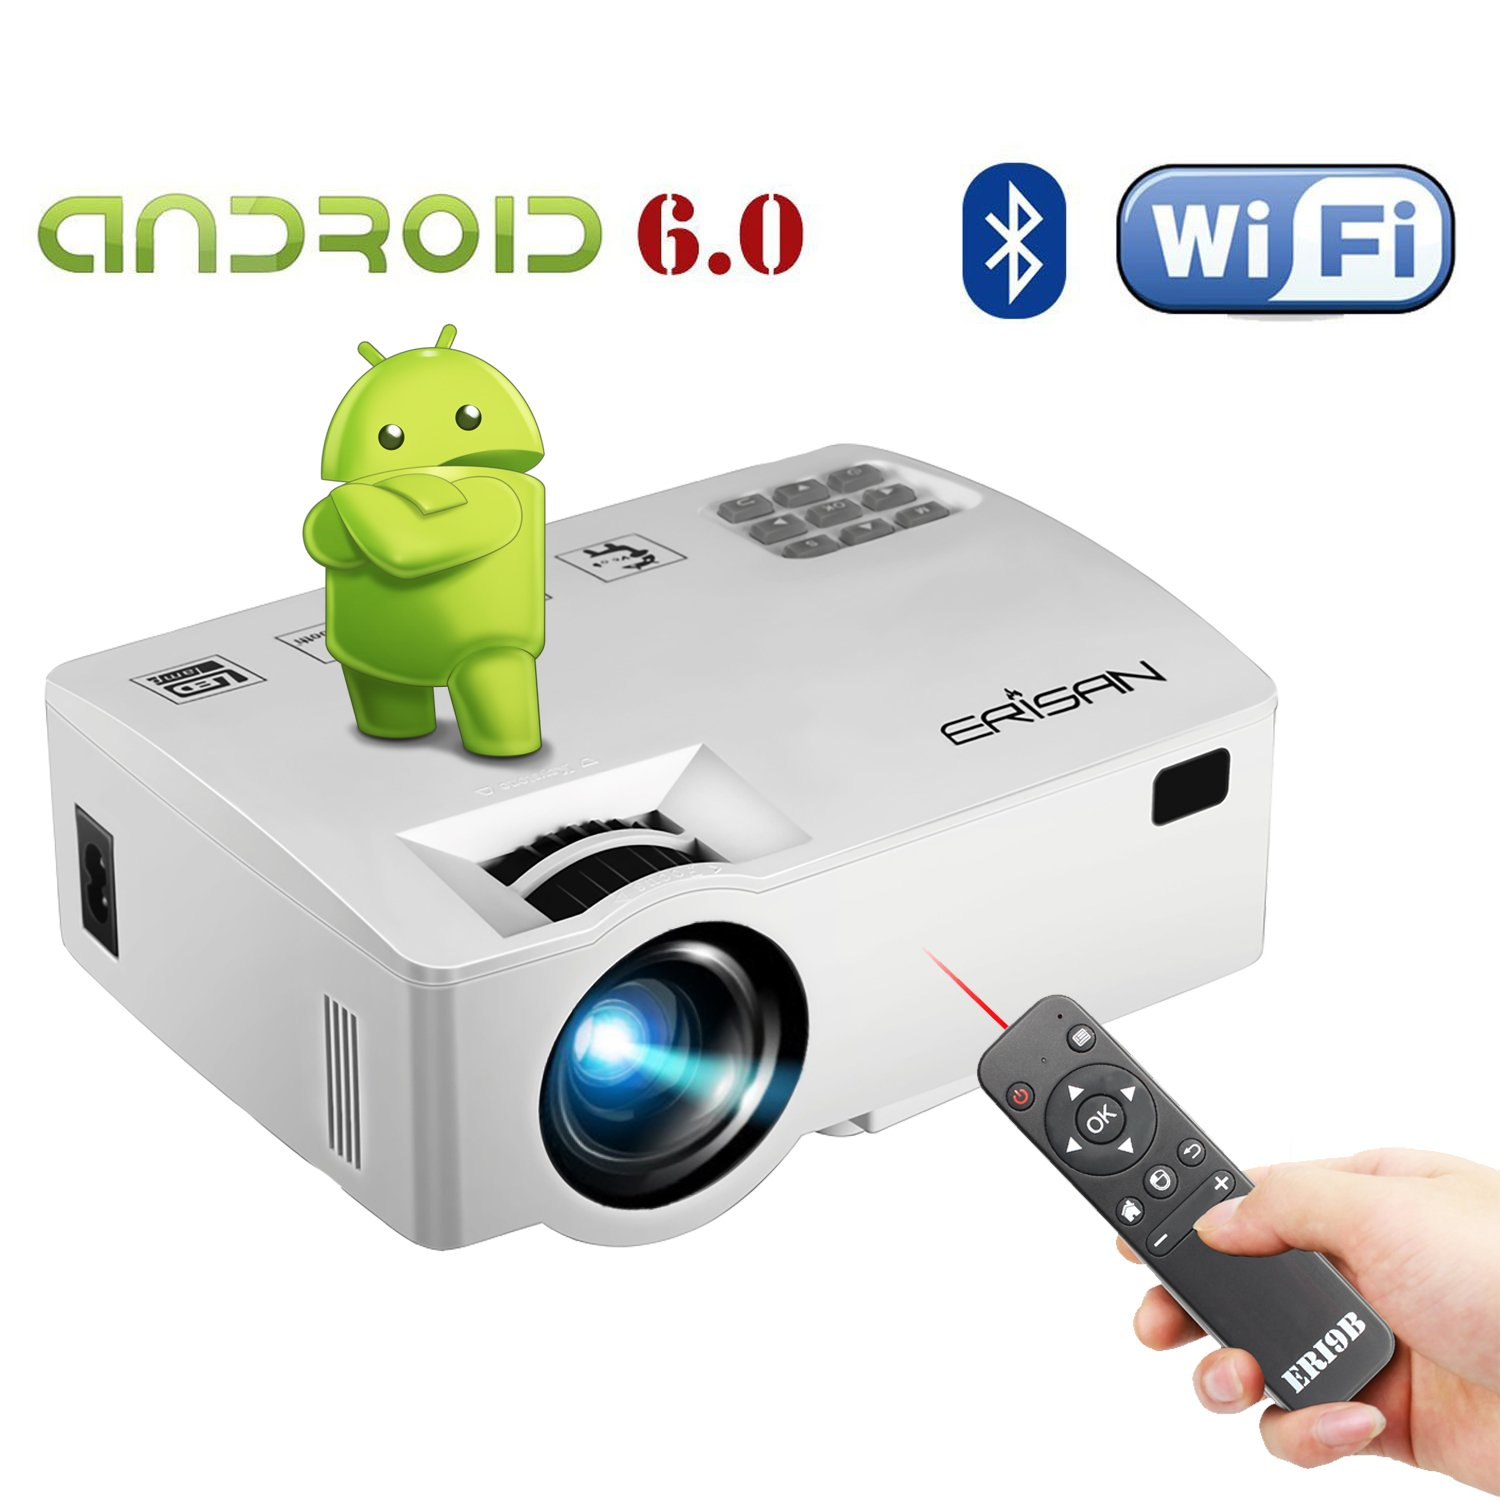 ERISAN Android 6.0 Projector(Warranty Included), Built-in WiFi Bluetooth Mini Smart Video Beam, Portable Multimedia LED Proyector for Movie Video Games APP (White)